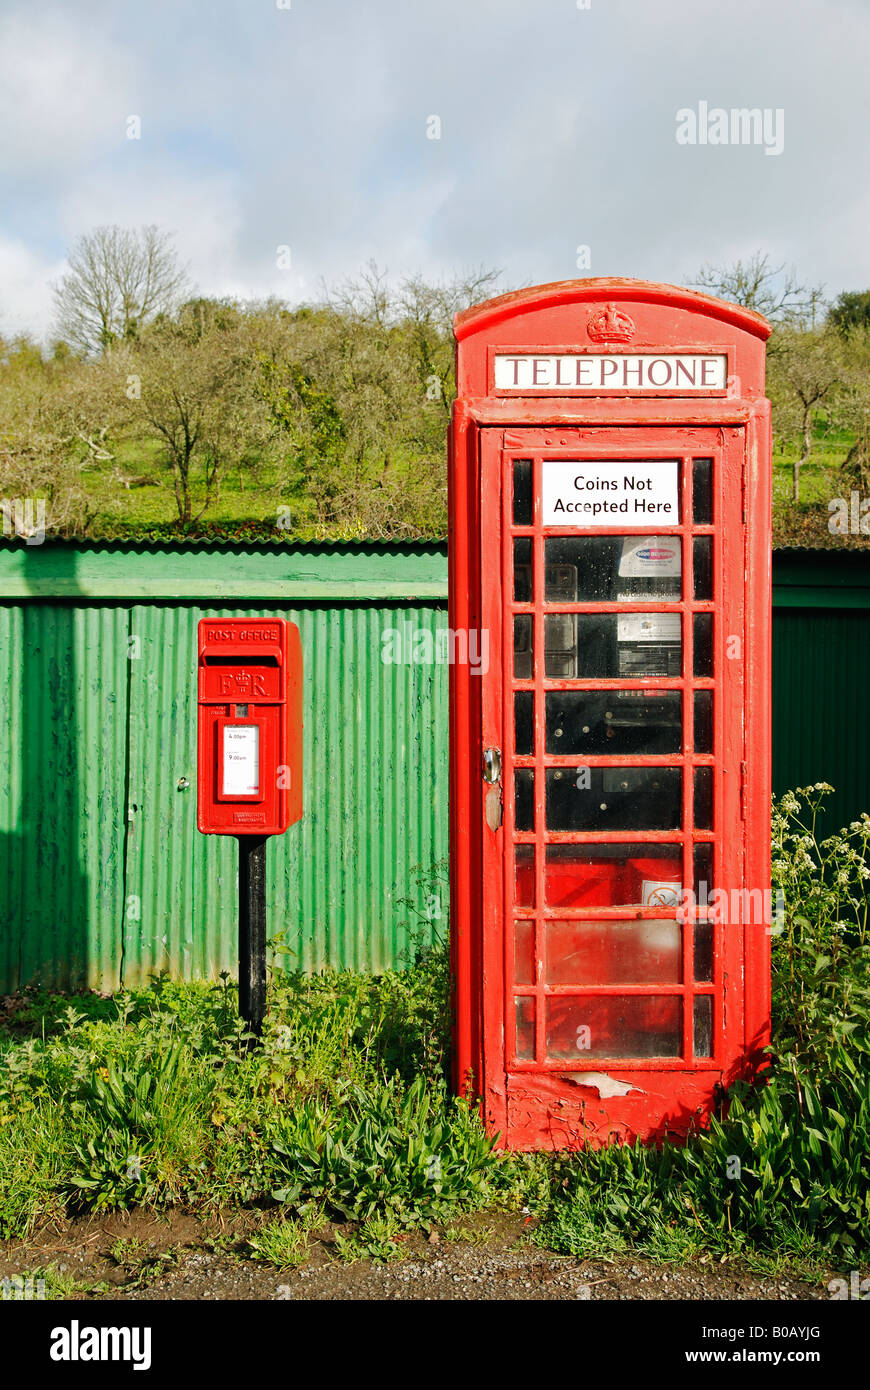 a british red telephone box next to a small postbox in cornwall,england - Stock Image